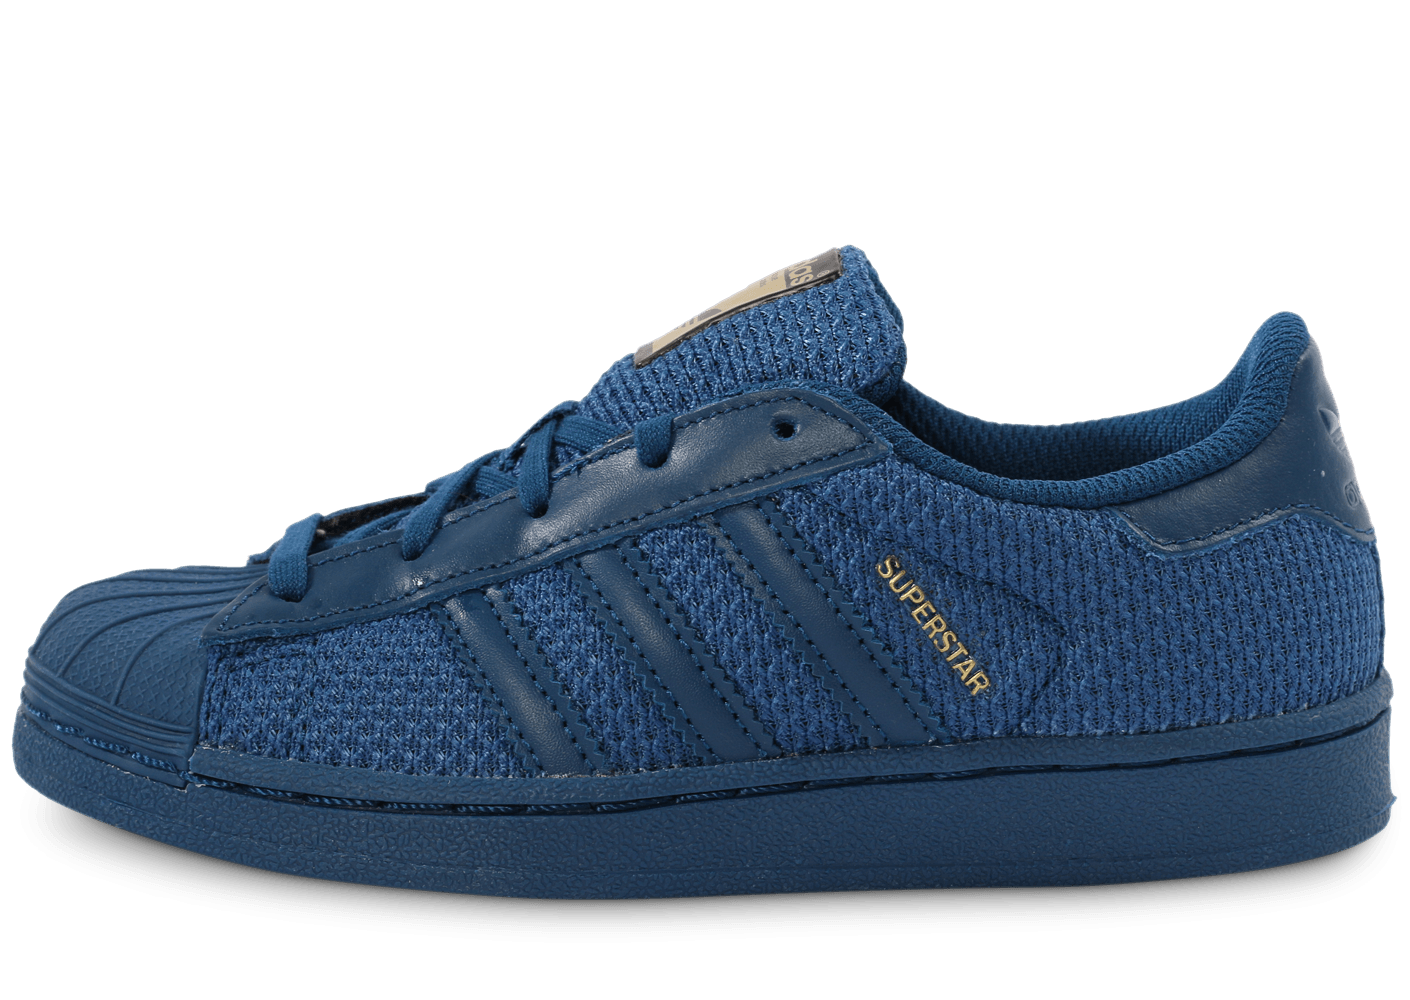 soldes adidas superstar nylon bleu marine enfant chaussures adidas chausport. Black Bedroom Furniture Sets. Home Design Ideas